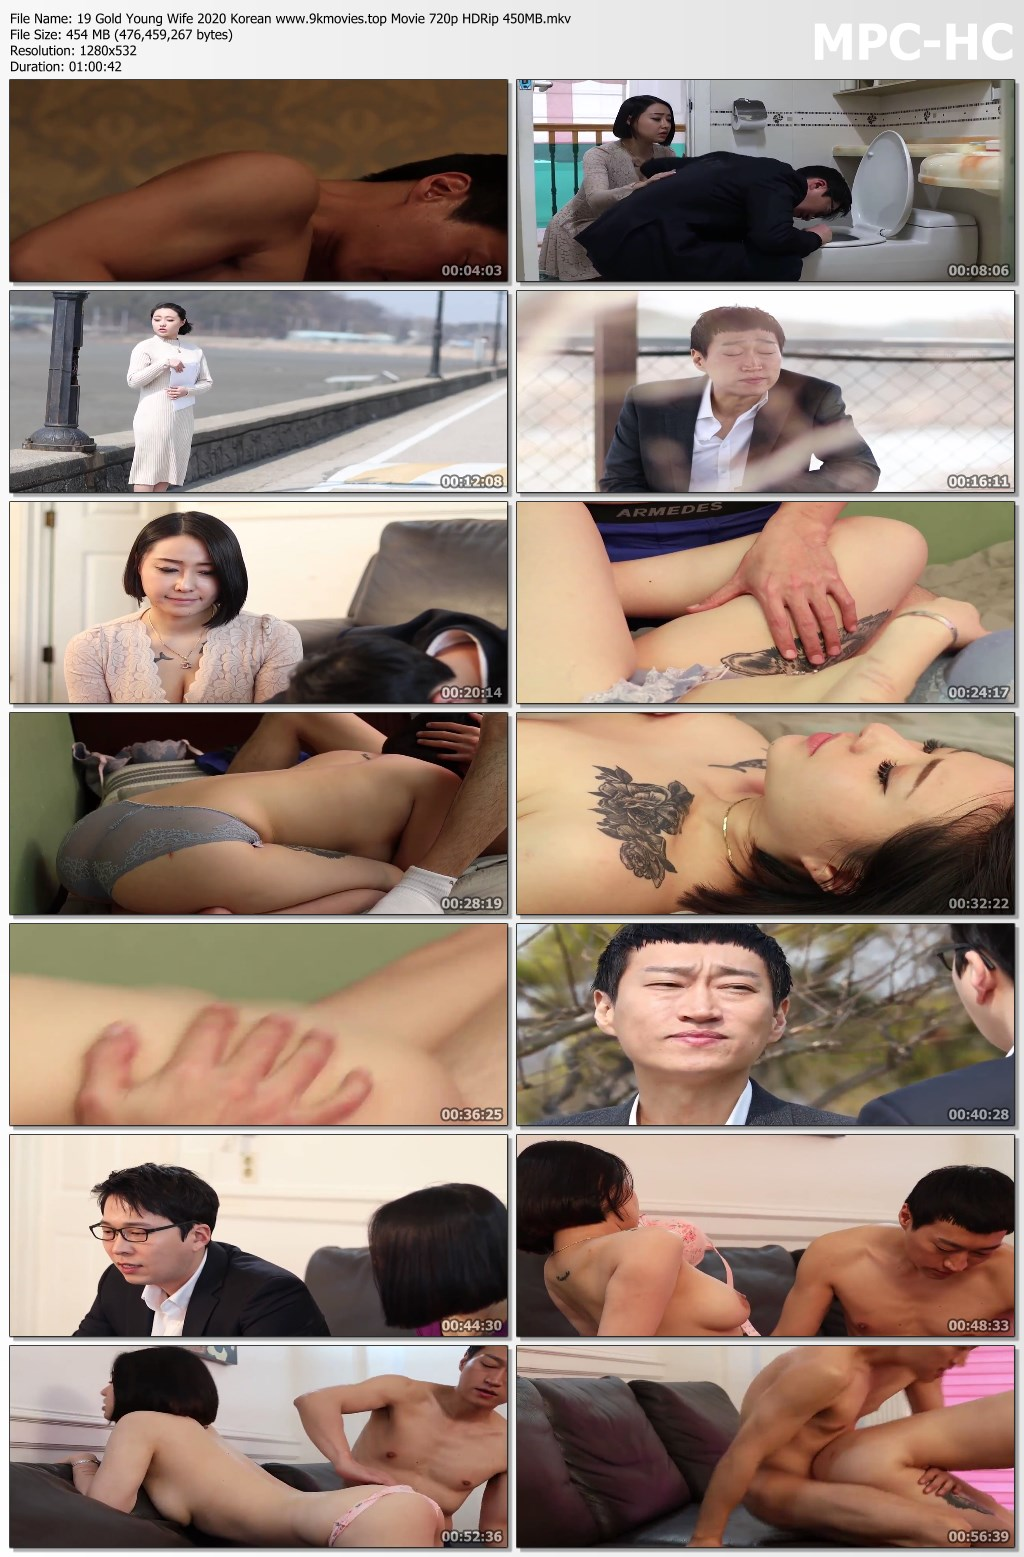 19 Gold Young Wife 2020 Korean www.9kmovies.top Movie 720p HDRip 450MB.mkv thumbs